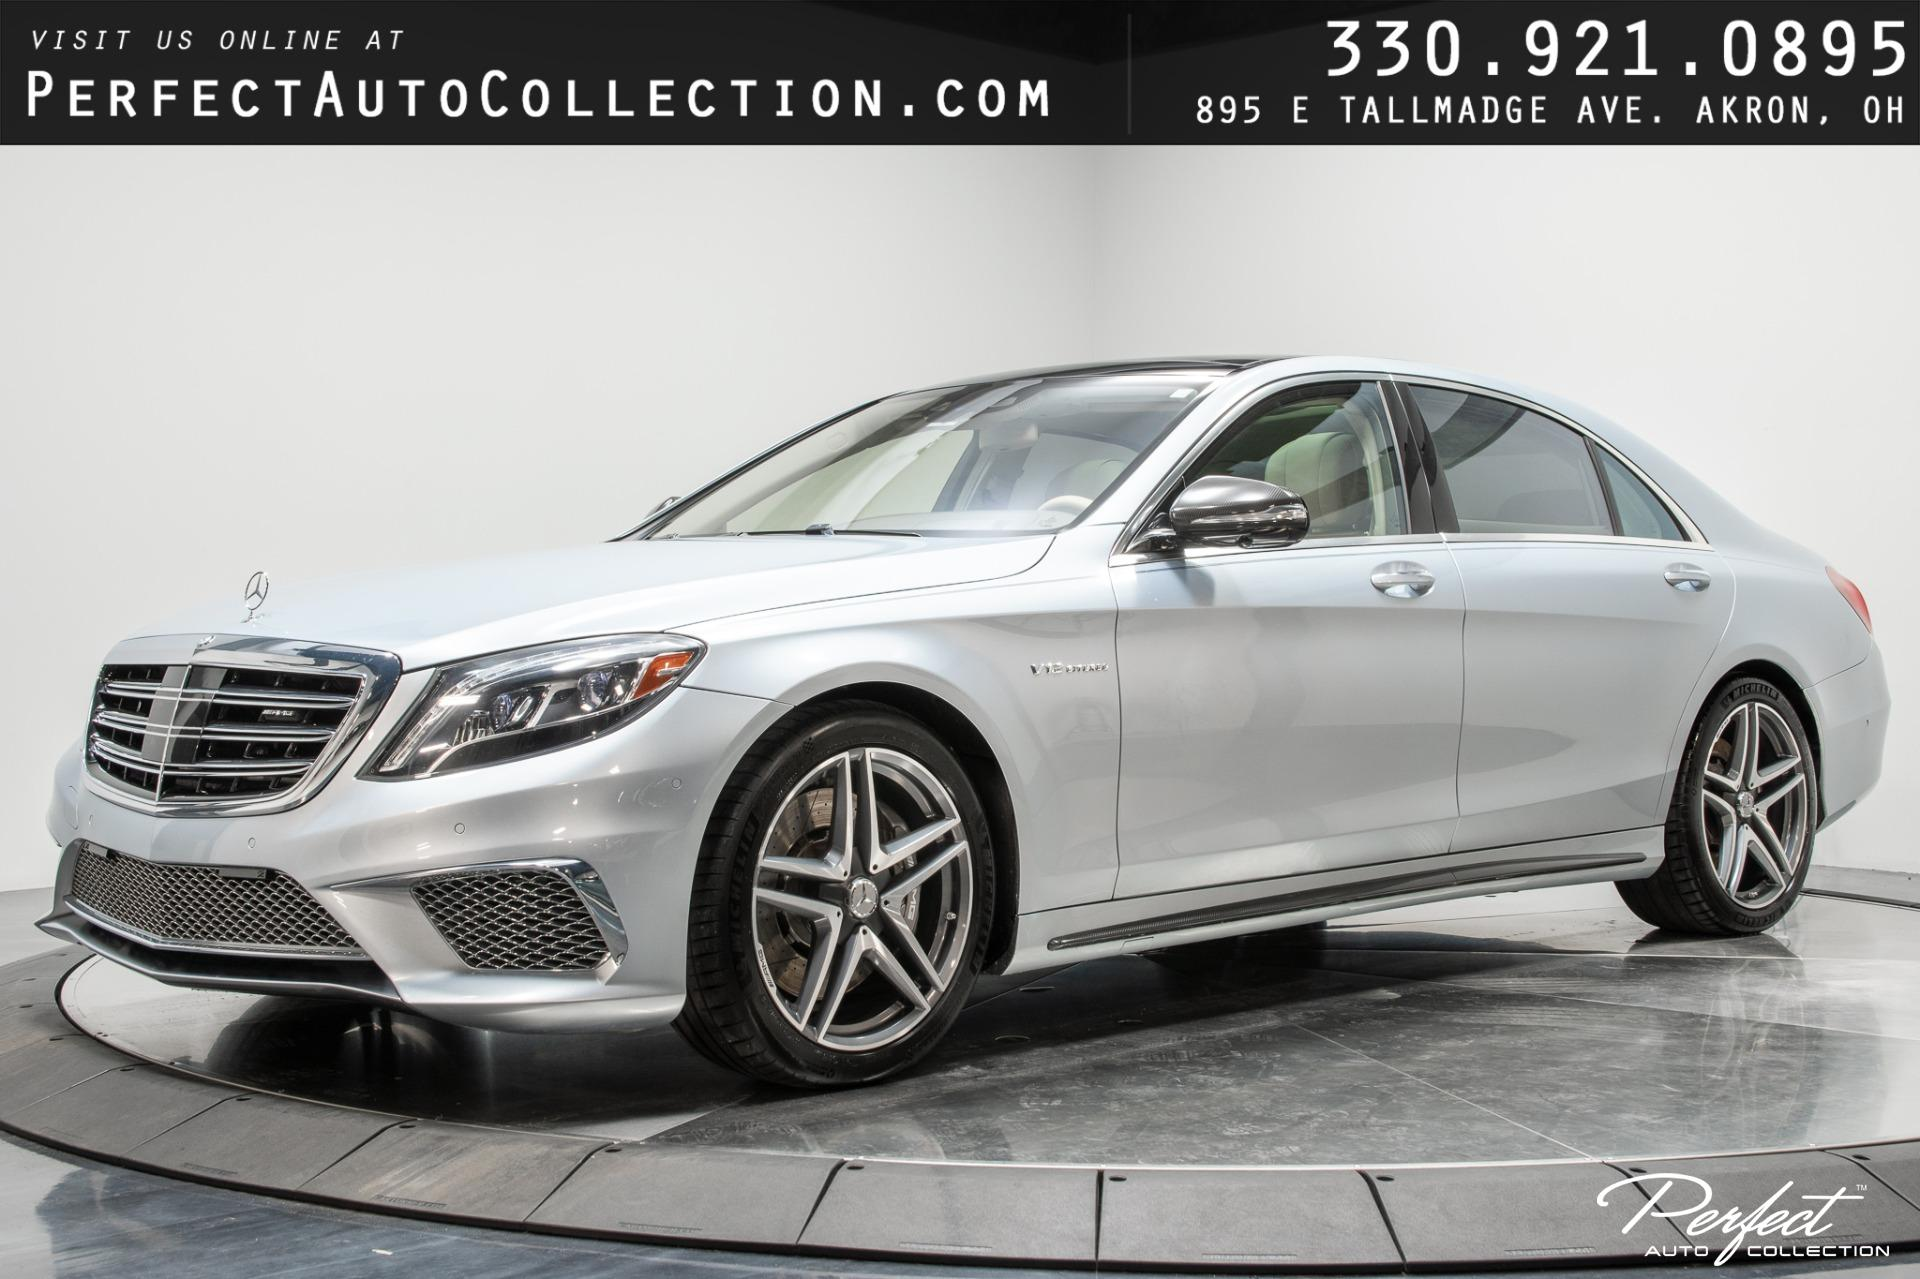 Used 2015 Mercedes-Benz S-Class S 65 AMG for sale $84,995 at Perfect Auto Collection in Akron OH 44310 1